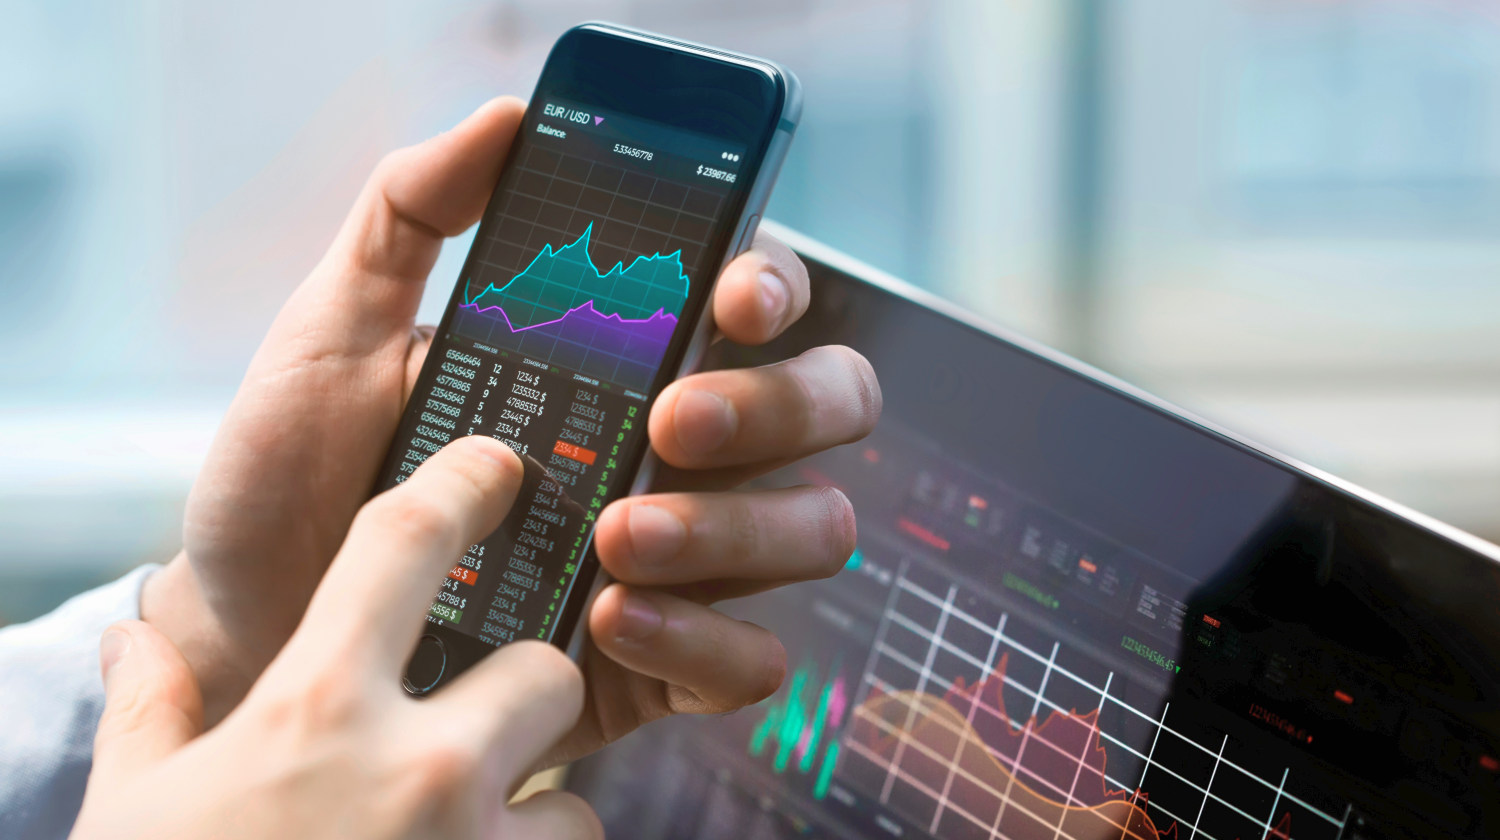 Business man holding phone | Investing 101: A Beginner's Guide To Investing | investing in stocks | Featured